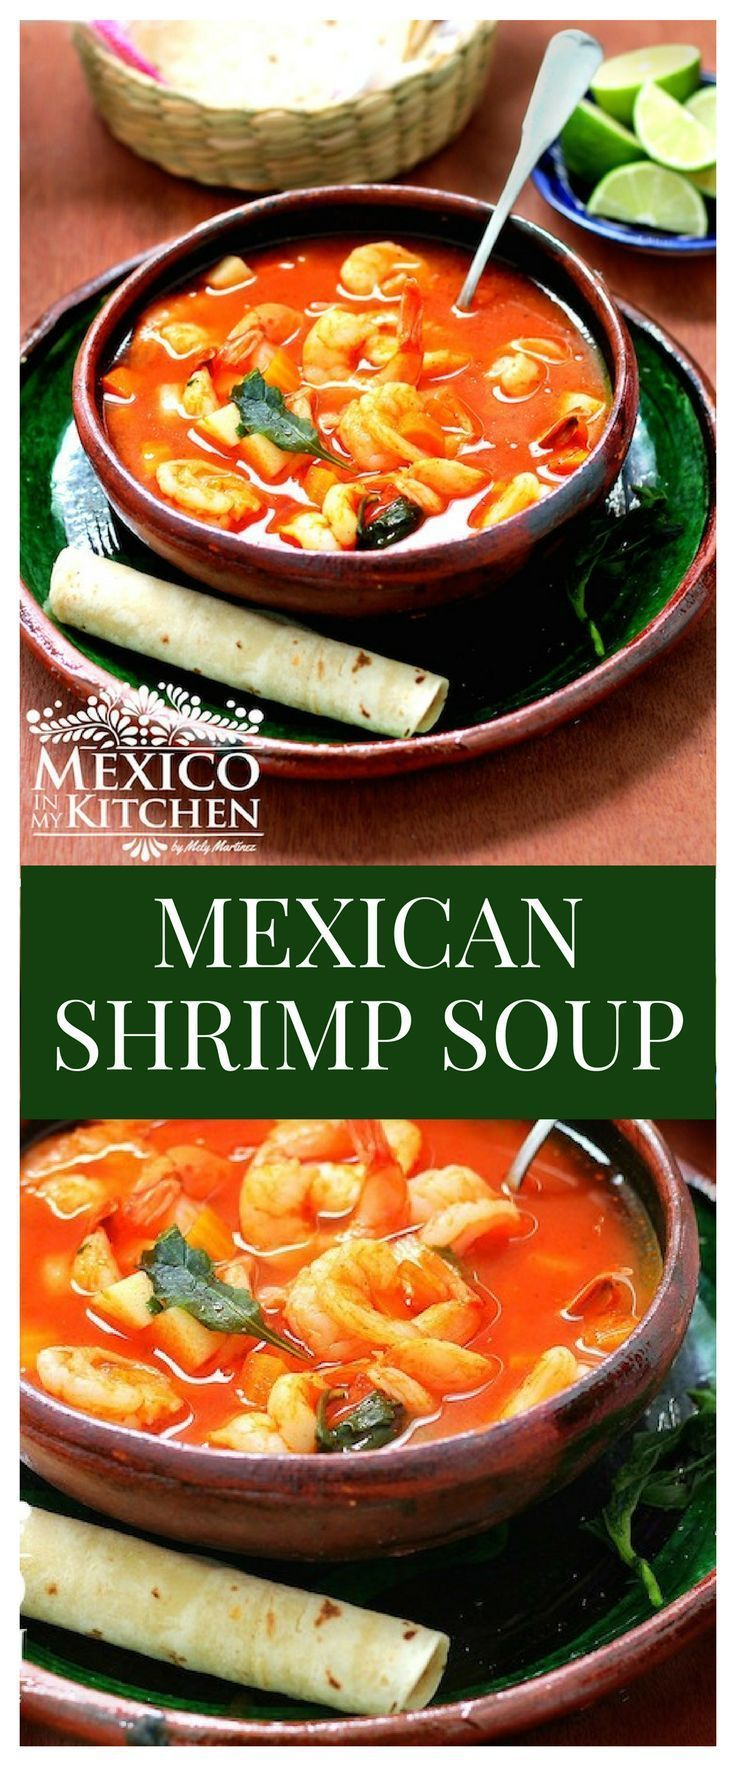 There are a multitude of ways shrimp soup is made in